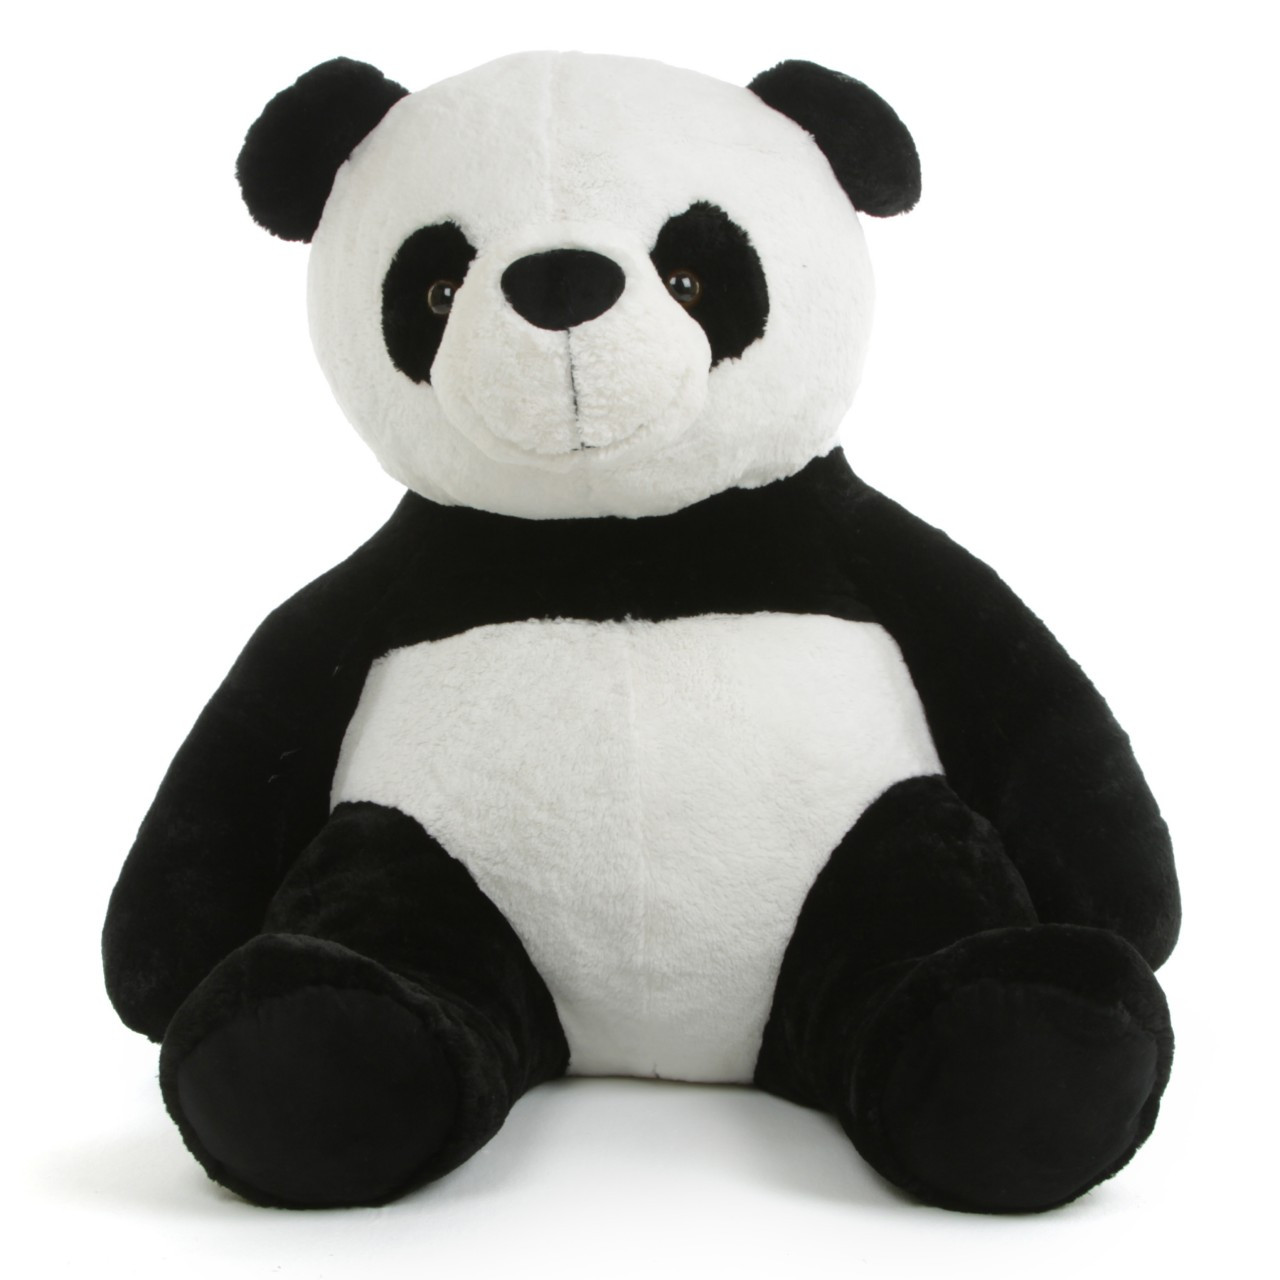 Fluffy and Huggable Huge Stuffed Panda Bear